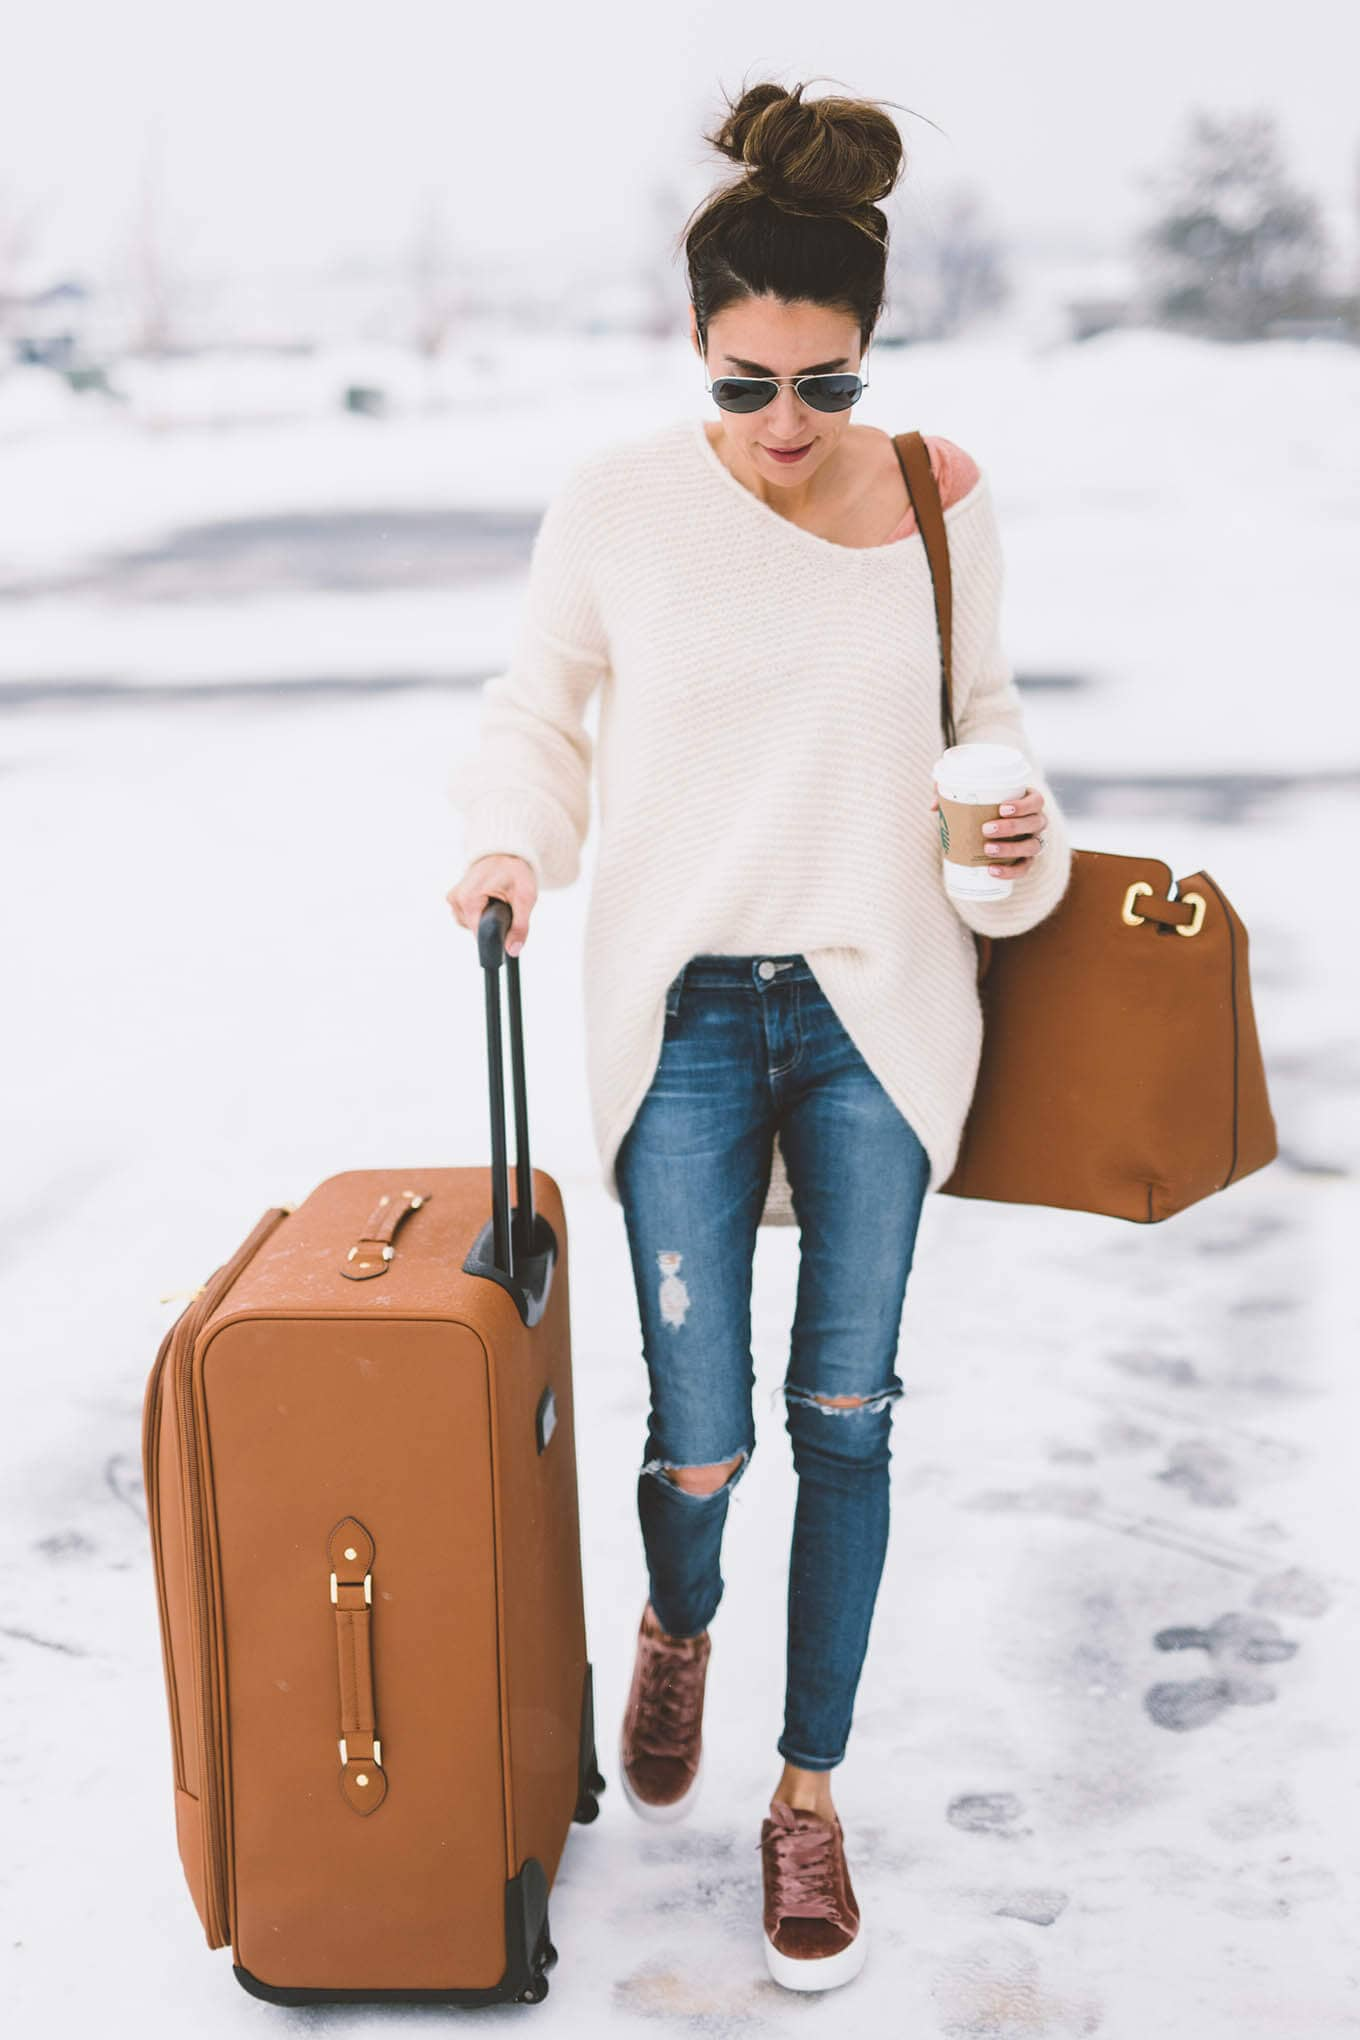 64d8a34ad3b 25 Trendy Airport Outfits to Make Traveling More Enjoyable